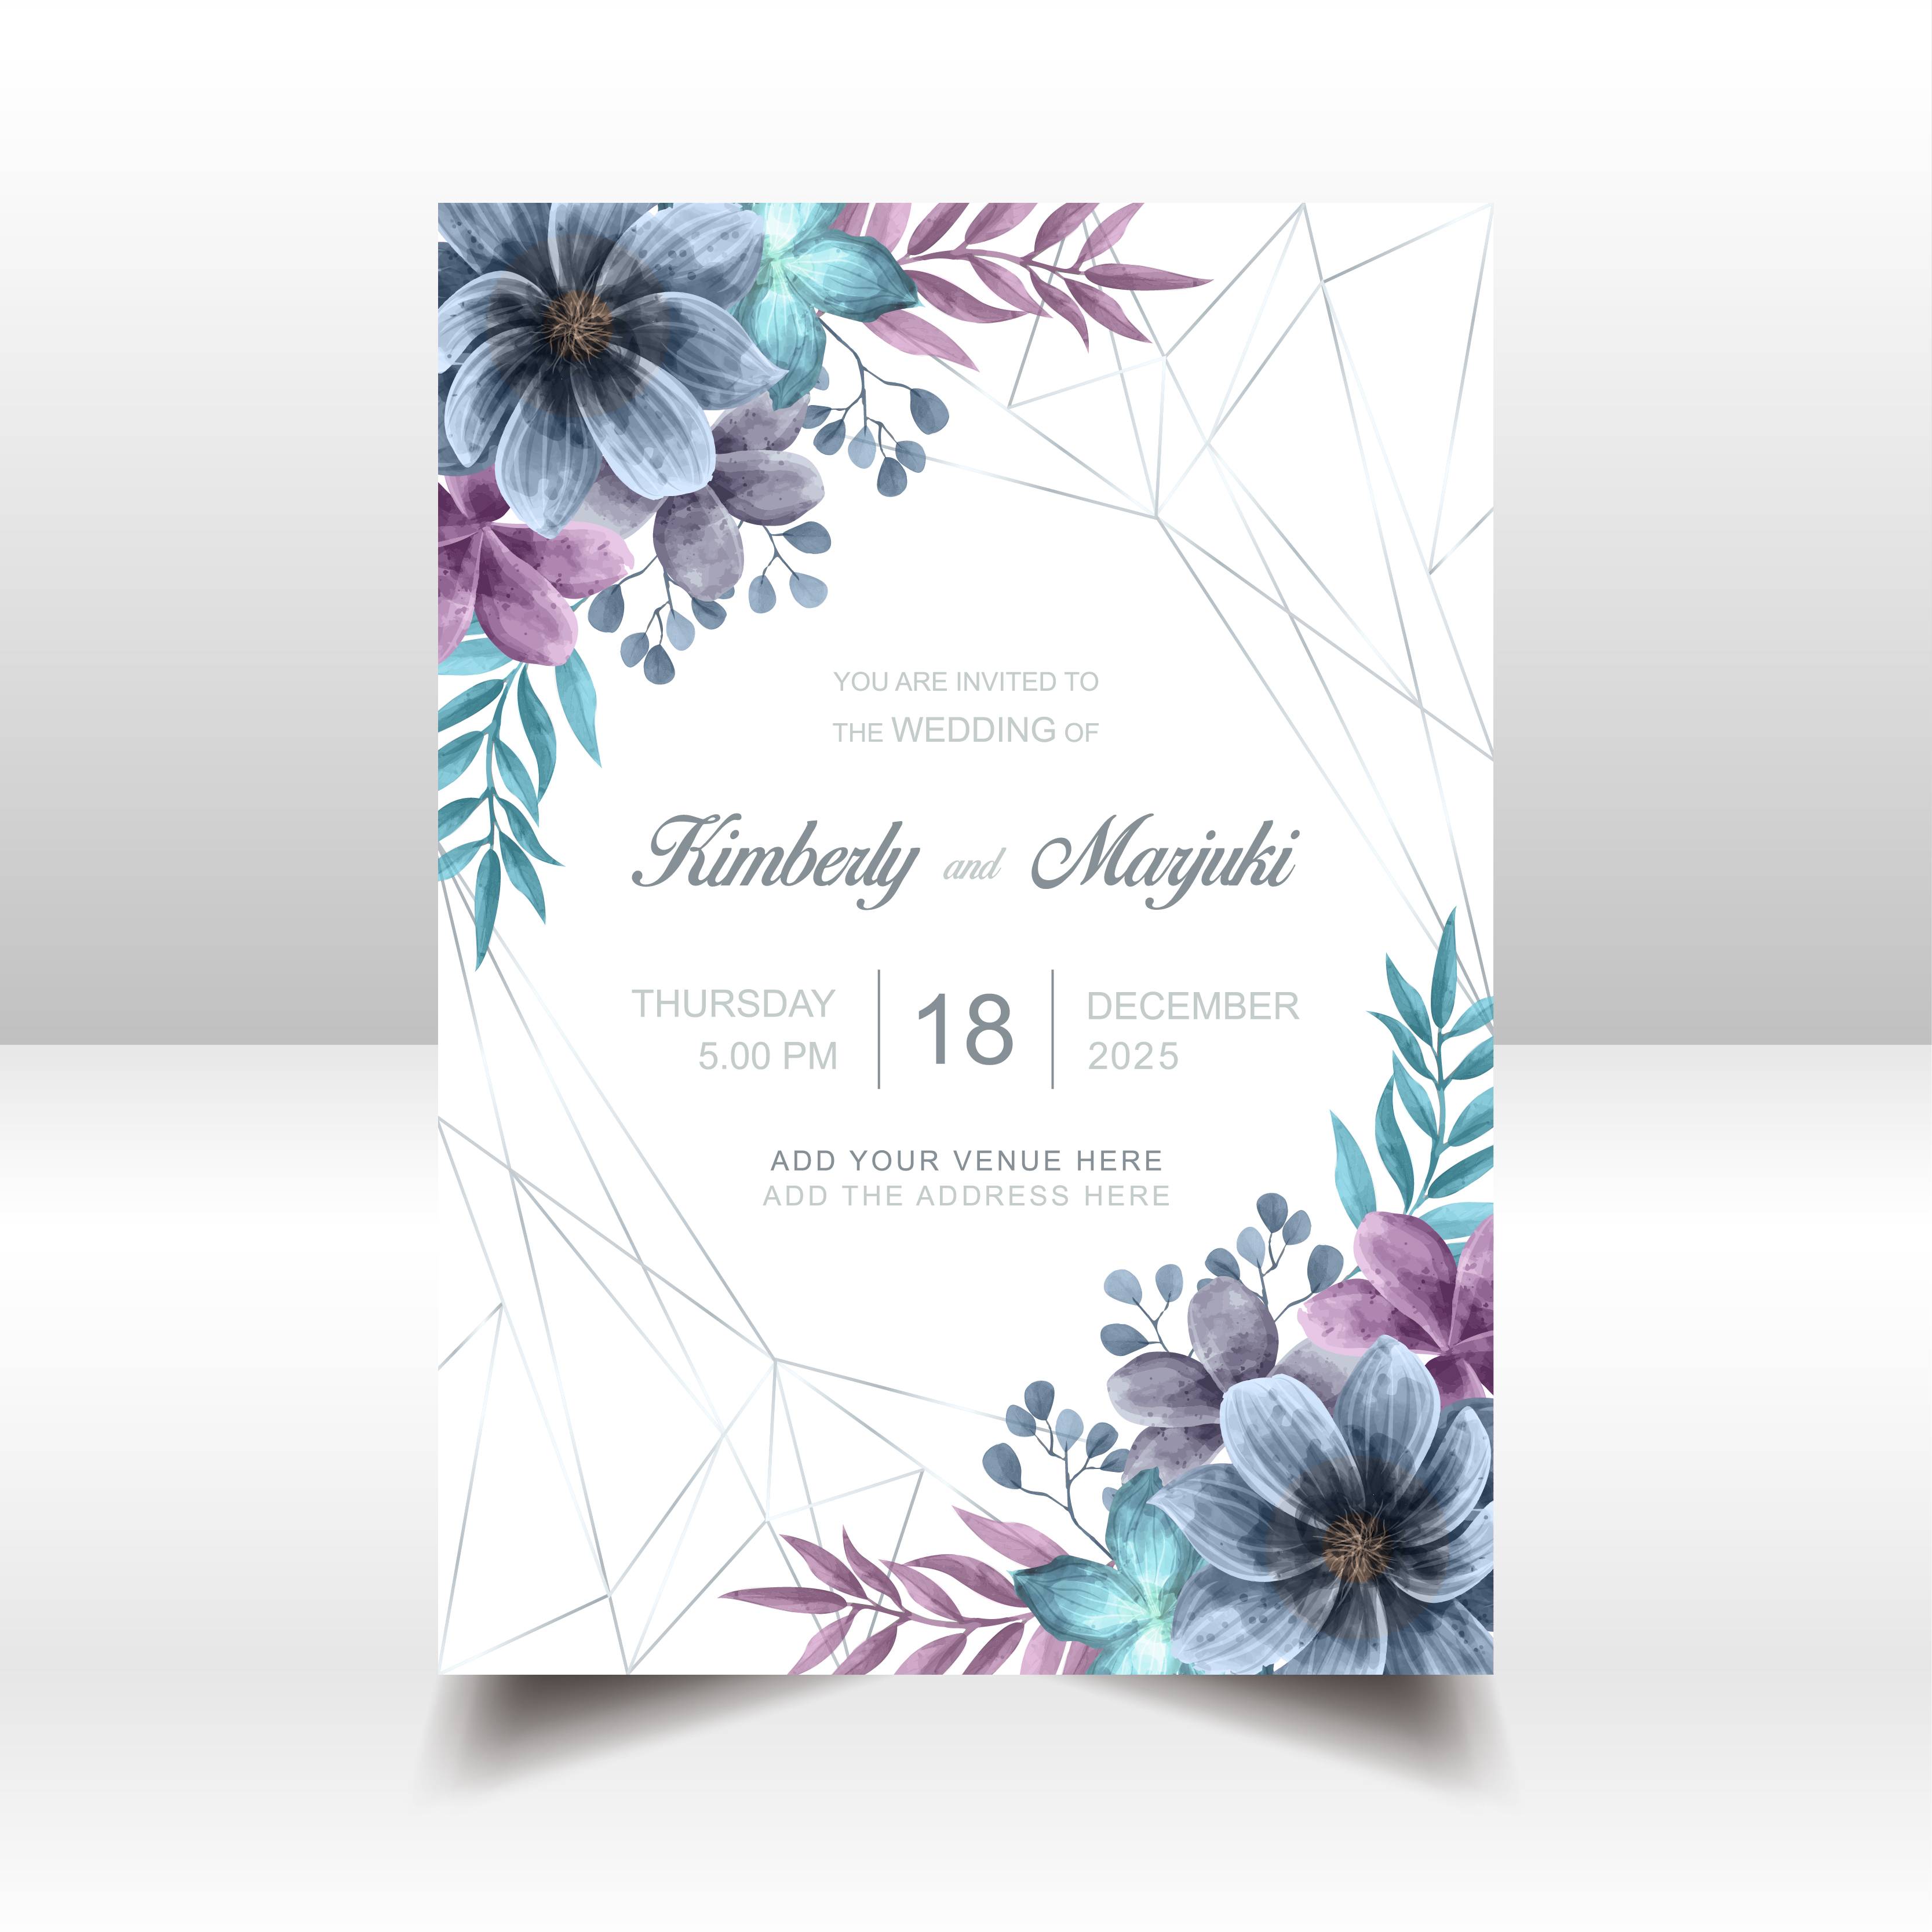 Wedding Invitation Watercolor Flowers Vector: Elegant Wedding Invitation Card With Beautiful Watercolor